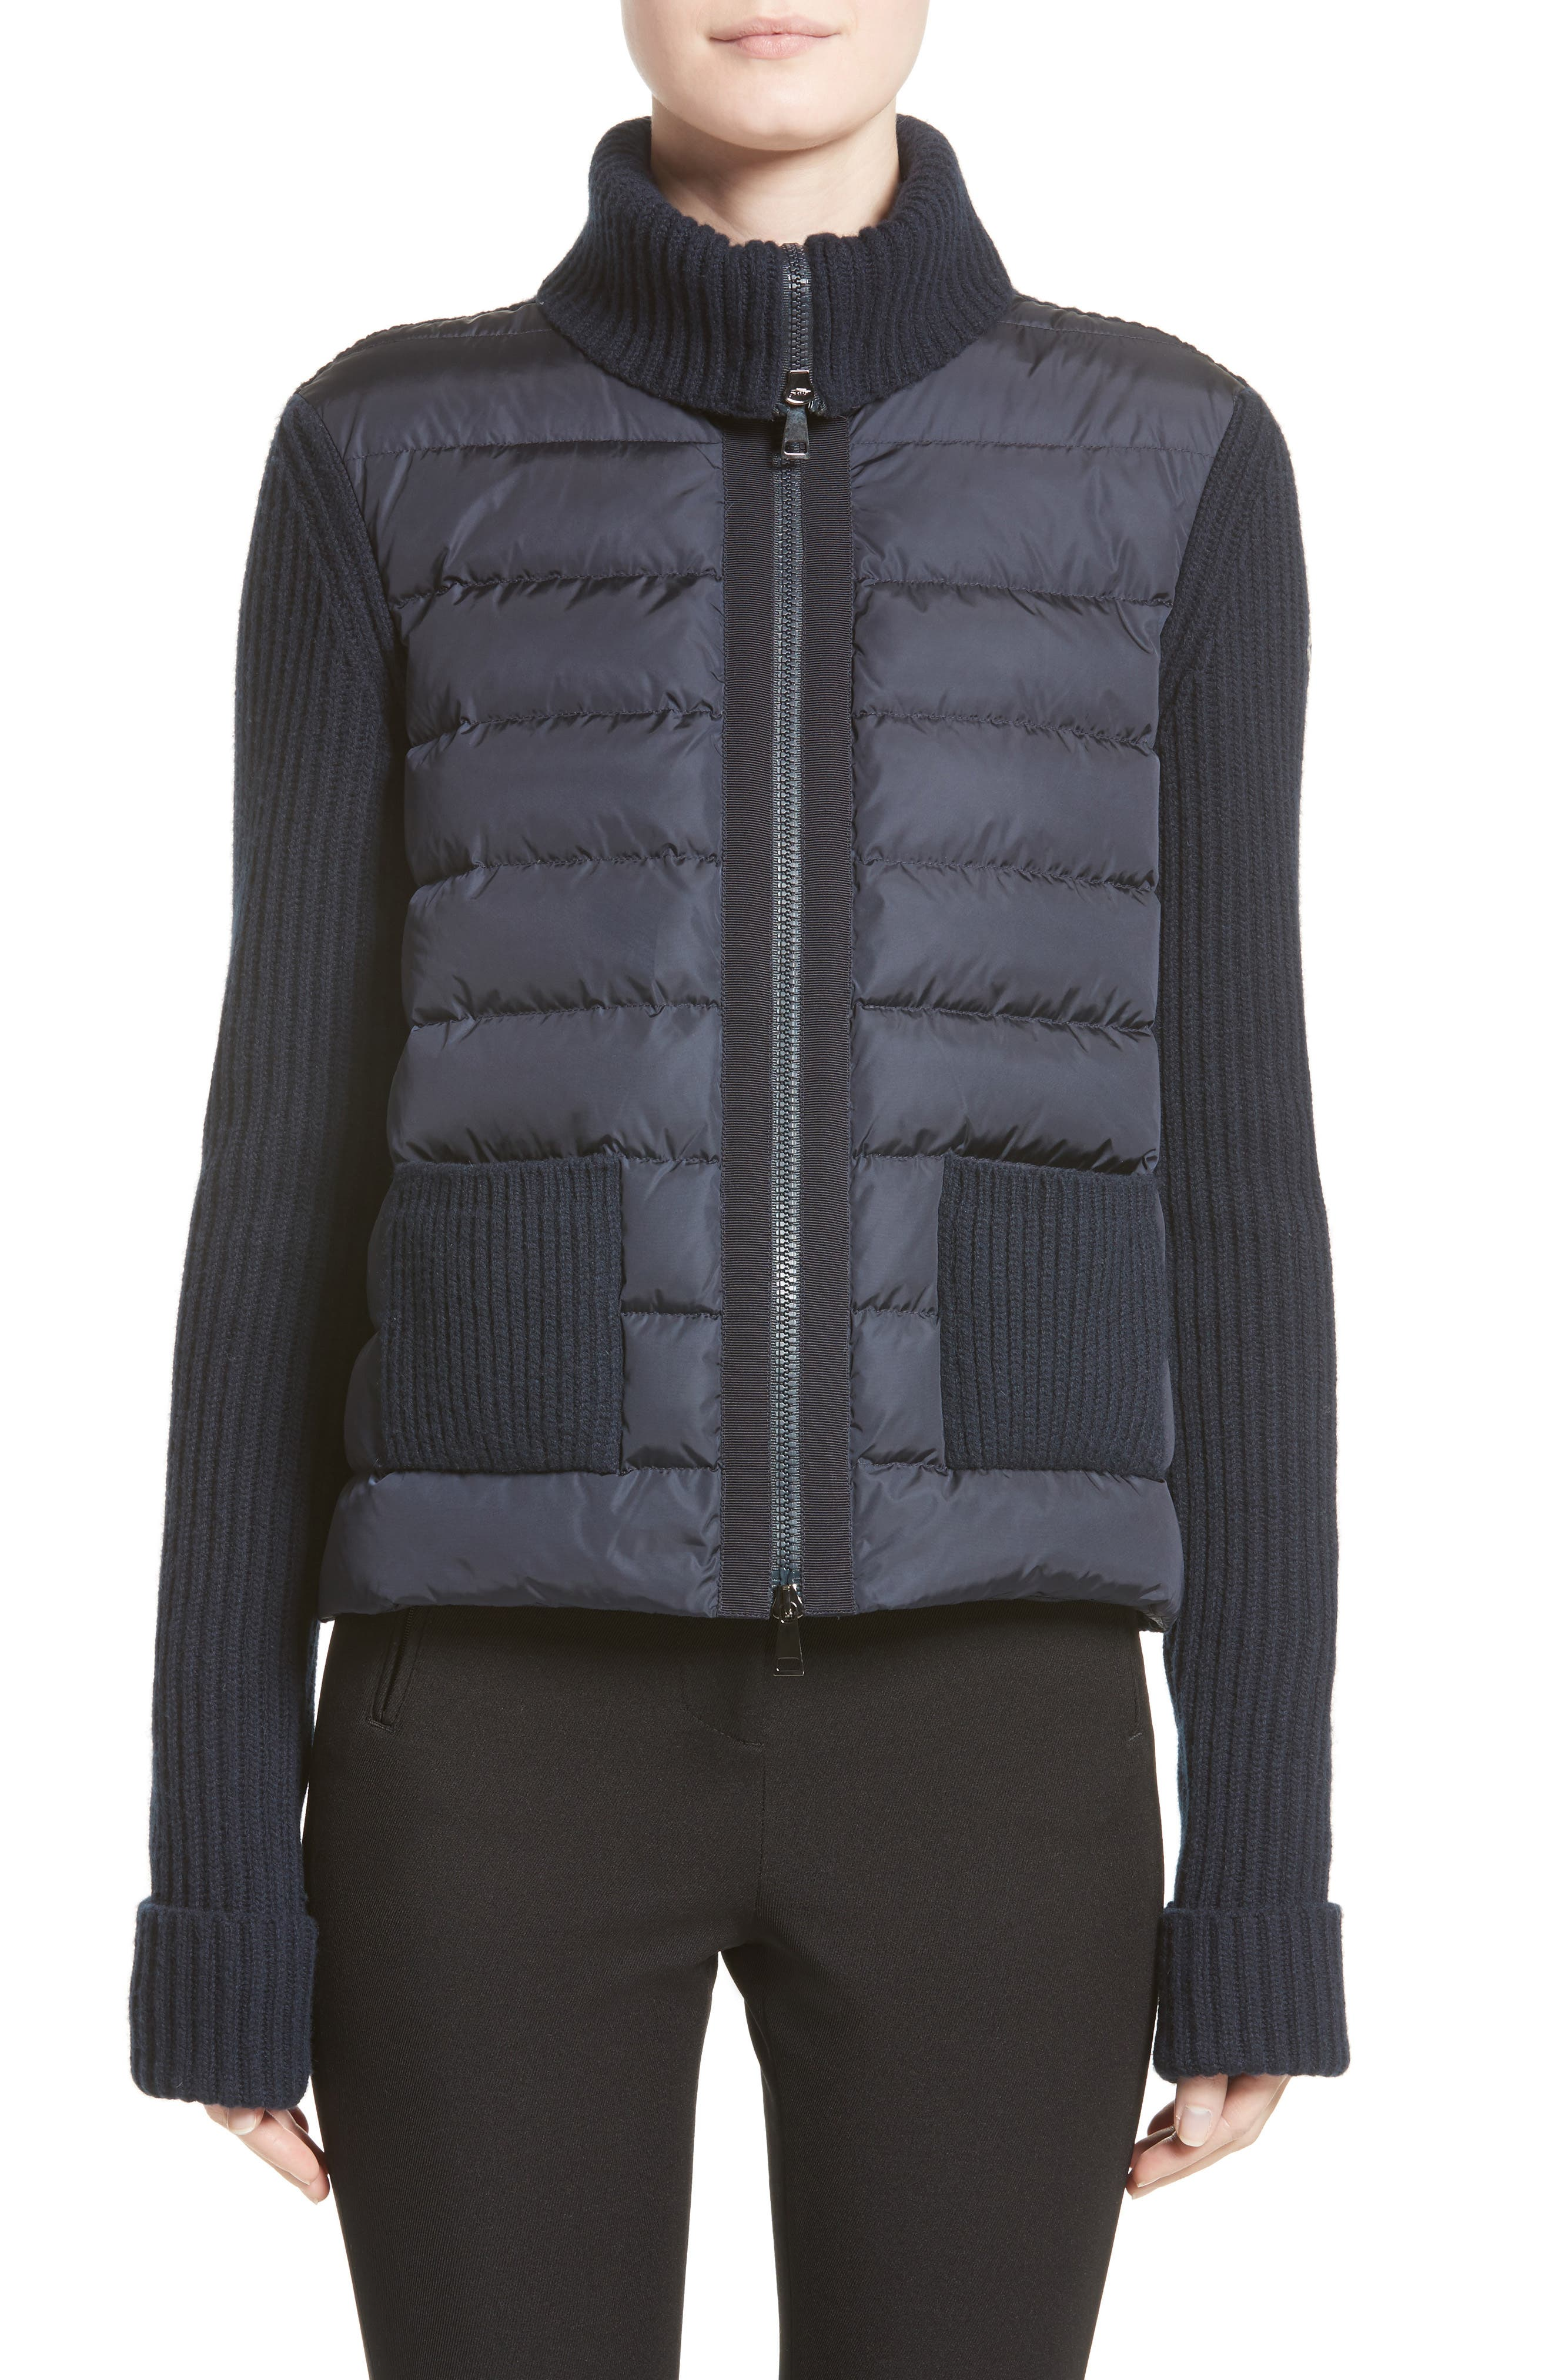 Main Image - Moncler Ciclista Quilted Down Front Sweater Jacket